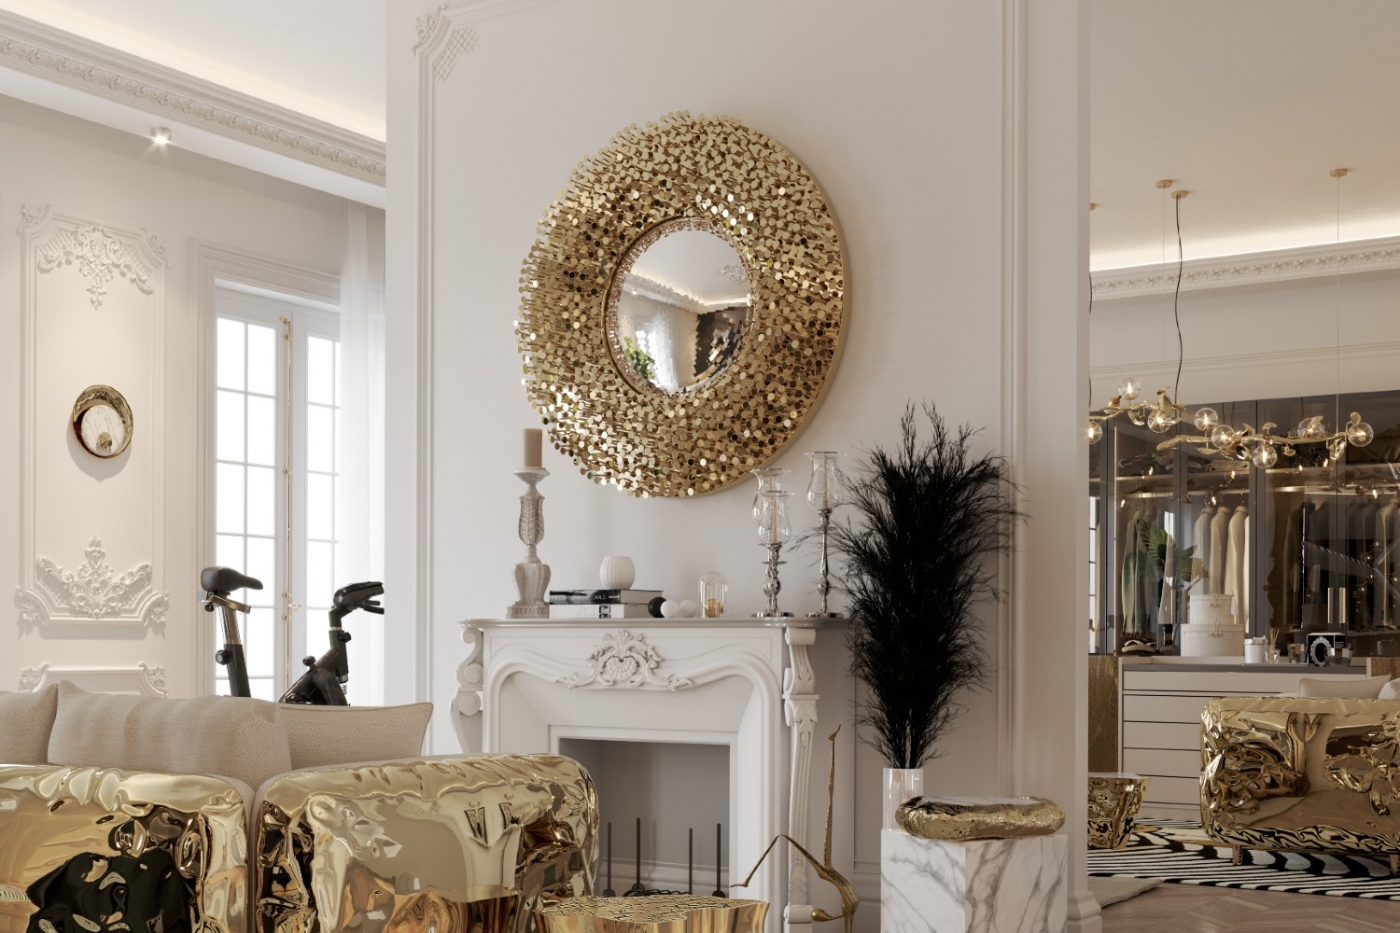 Collectable Design Pieces You Can Find In This Luxury Penthouse ft collectable design Collectable Design Pieces You Can Find In This Luxury Penthouse Collectable Design Pieces You Can Find In This Luxury Penthouse ft 1400x933